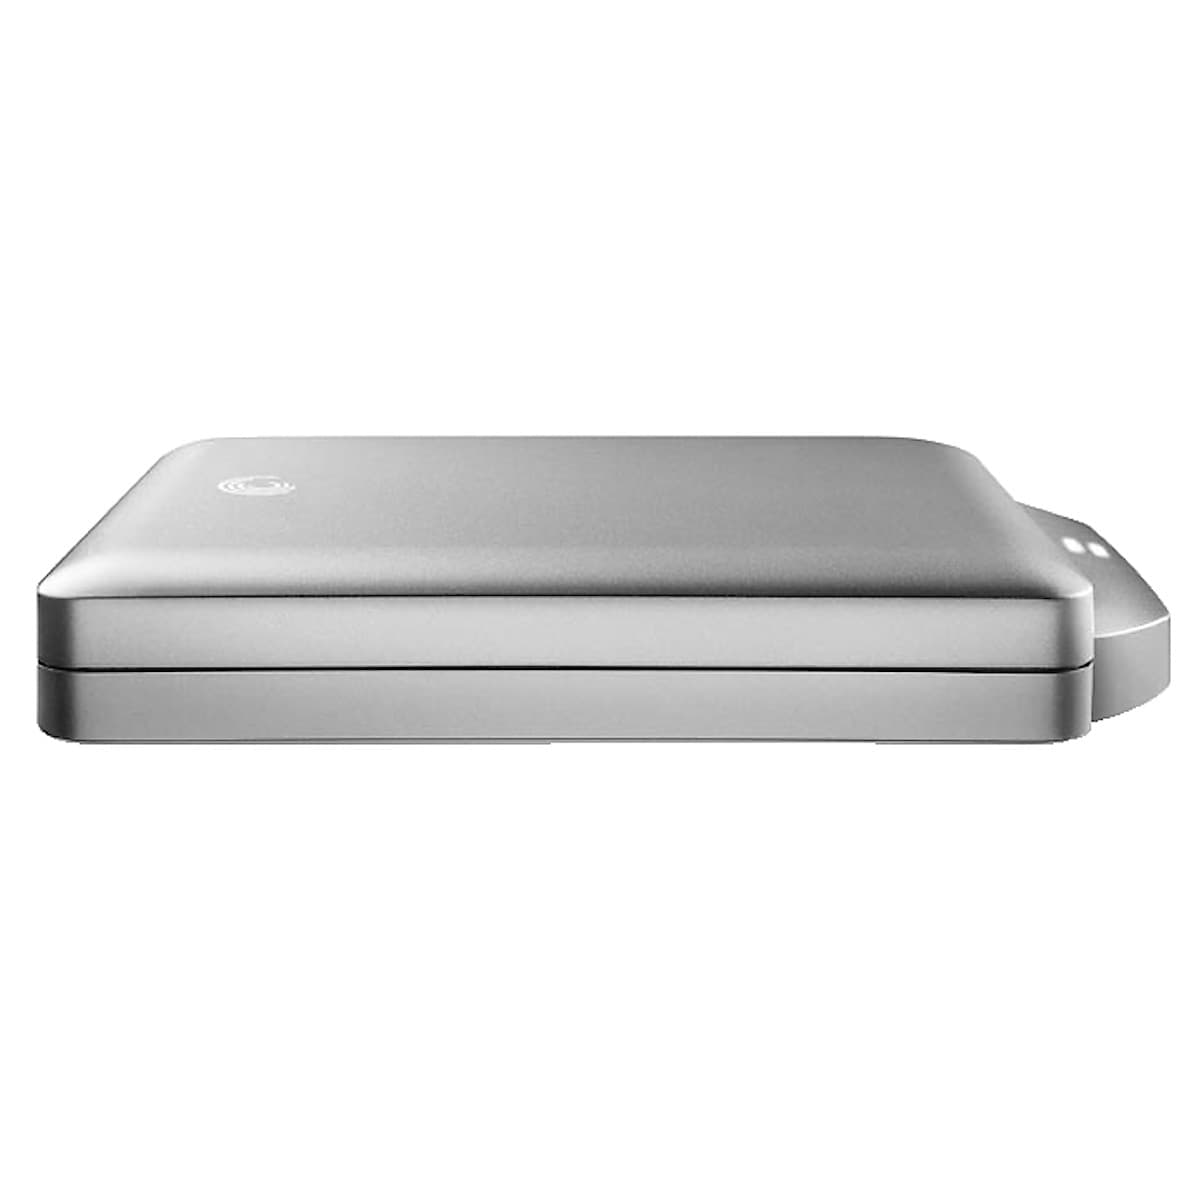 Extern hårddisk GoFlex for Mac 1,5 TB